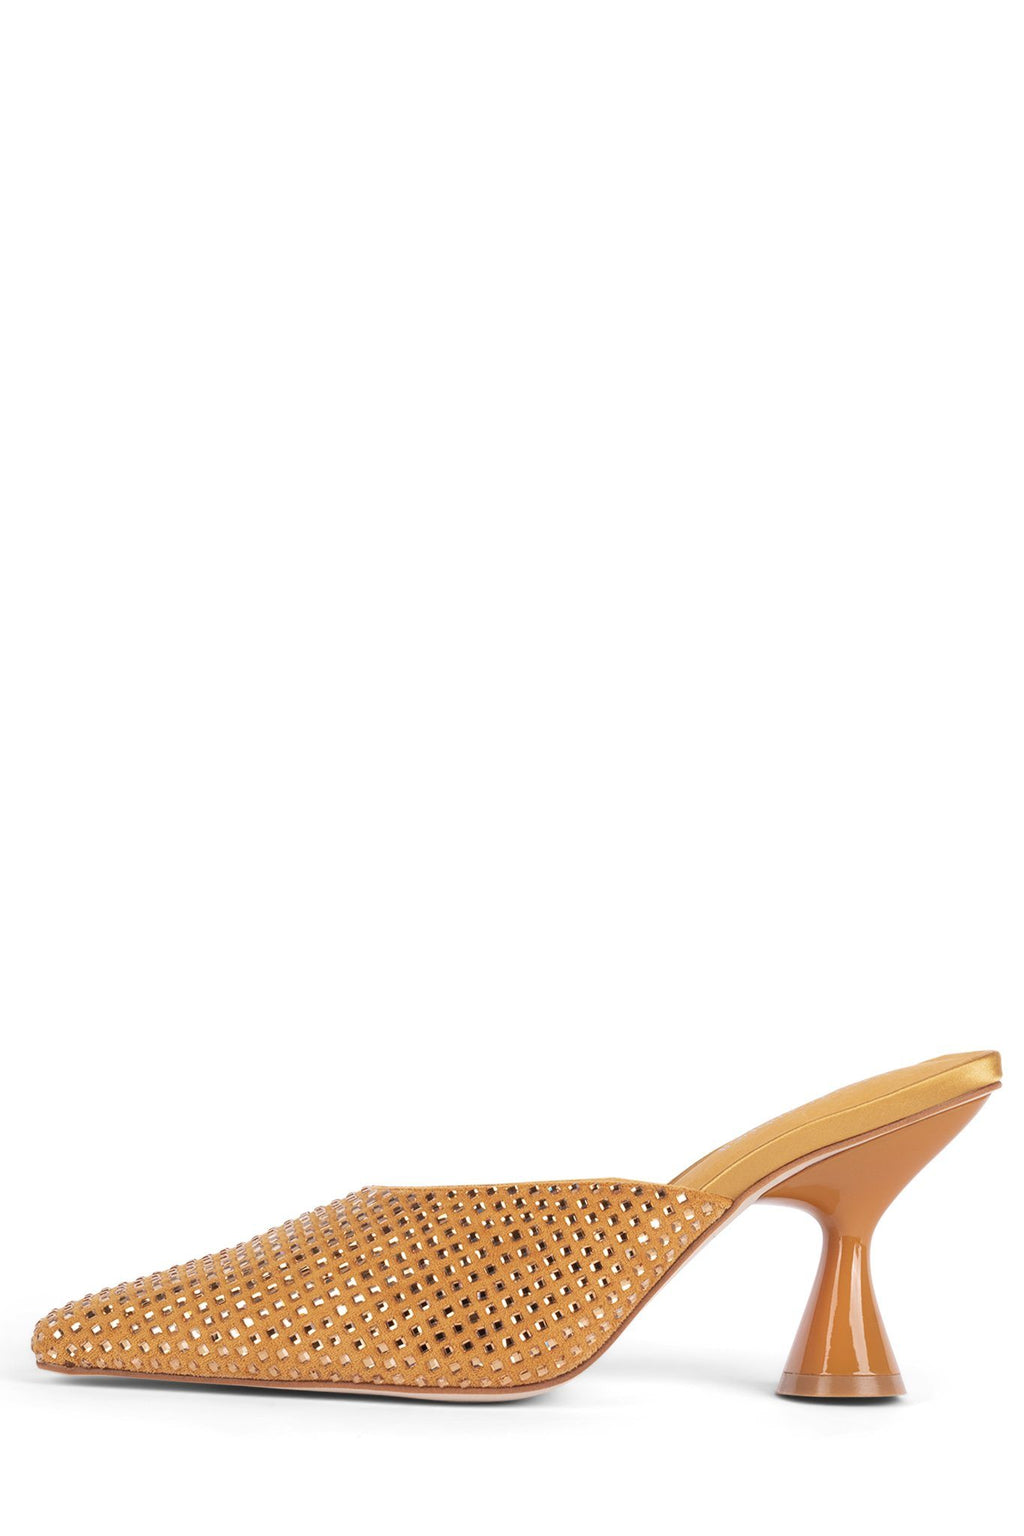 CYRILL-2J Heeled Mule STRATEGY Yellow Satin Gold 5